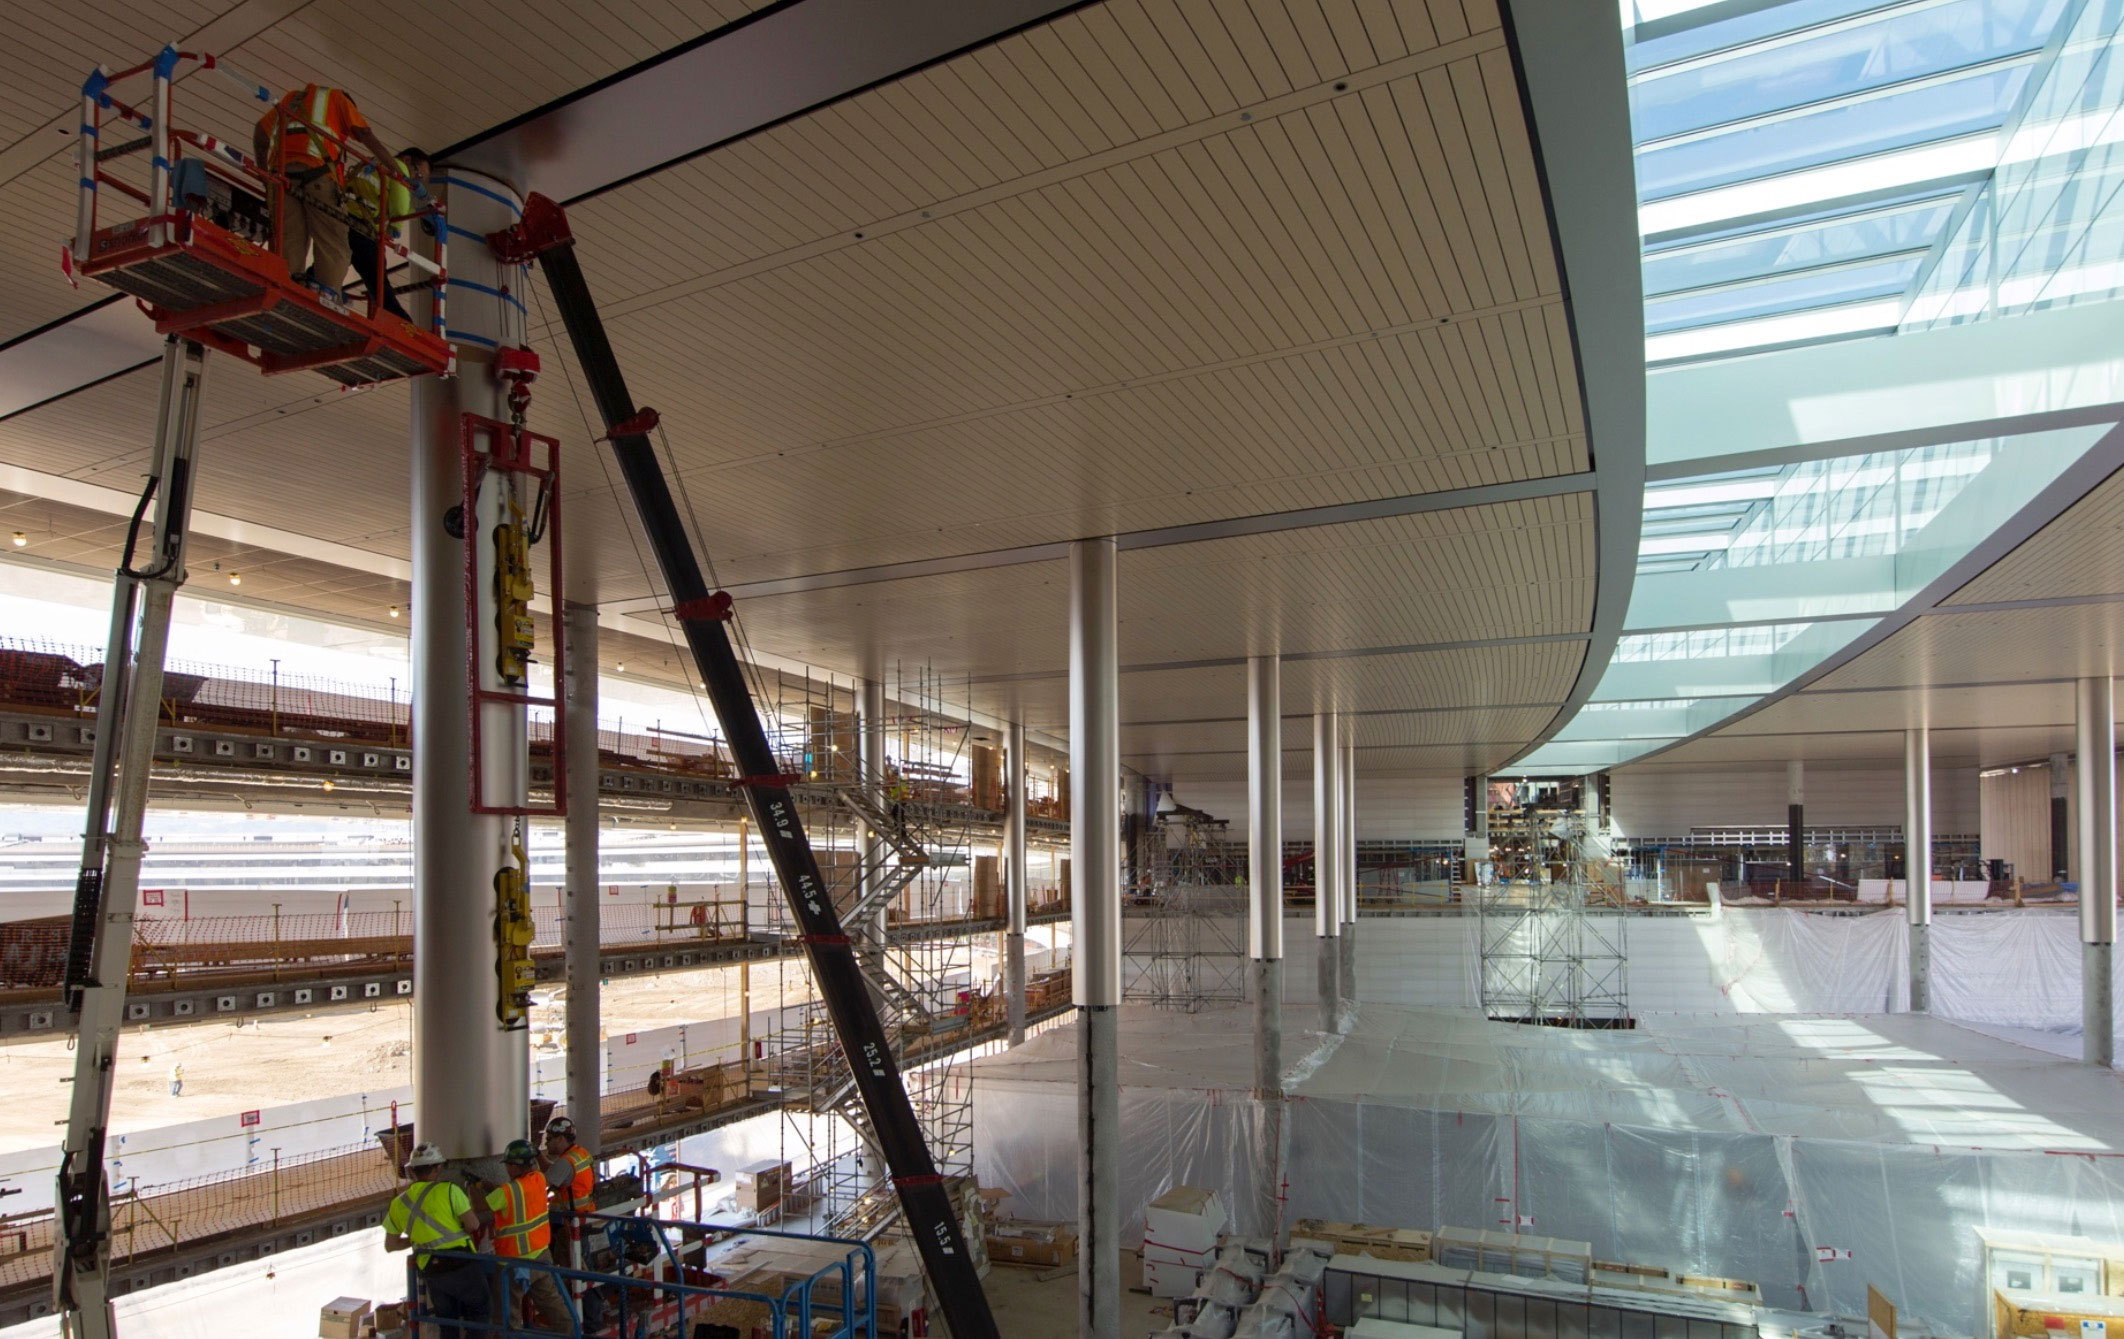 Oficinas de Apple en el Campus 2